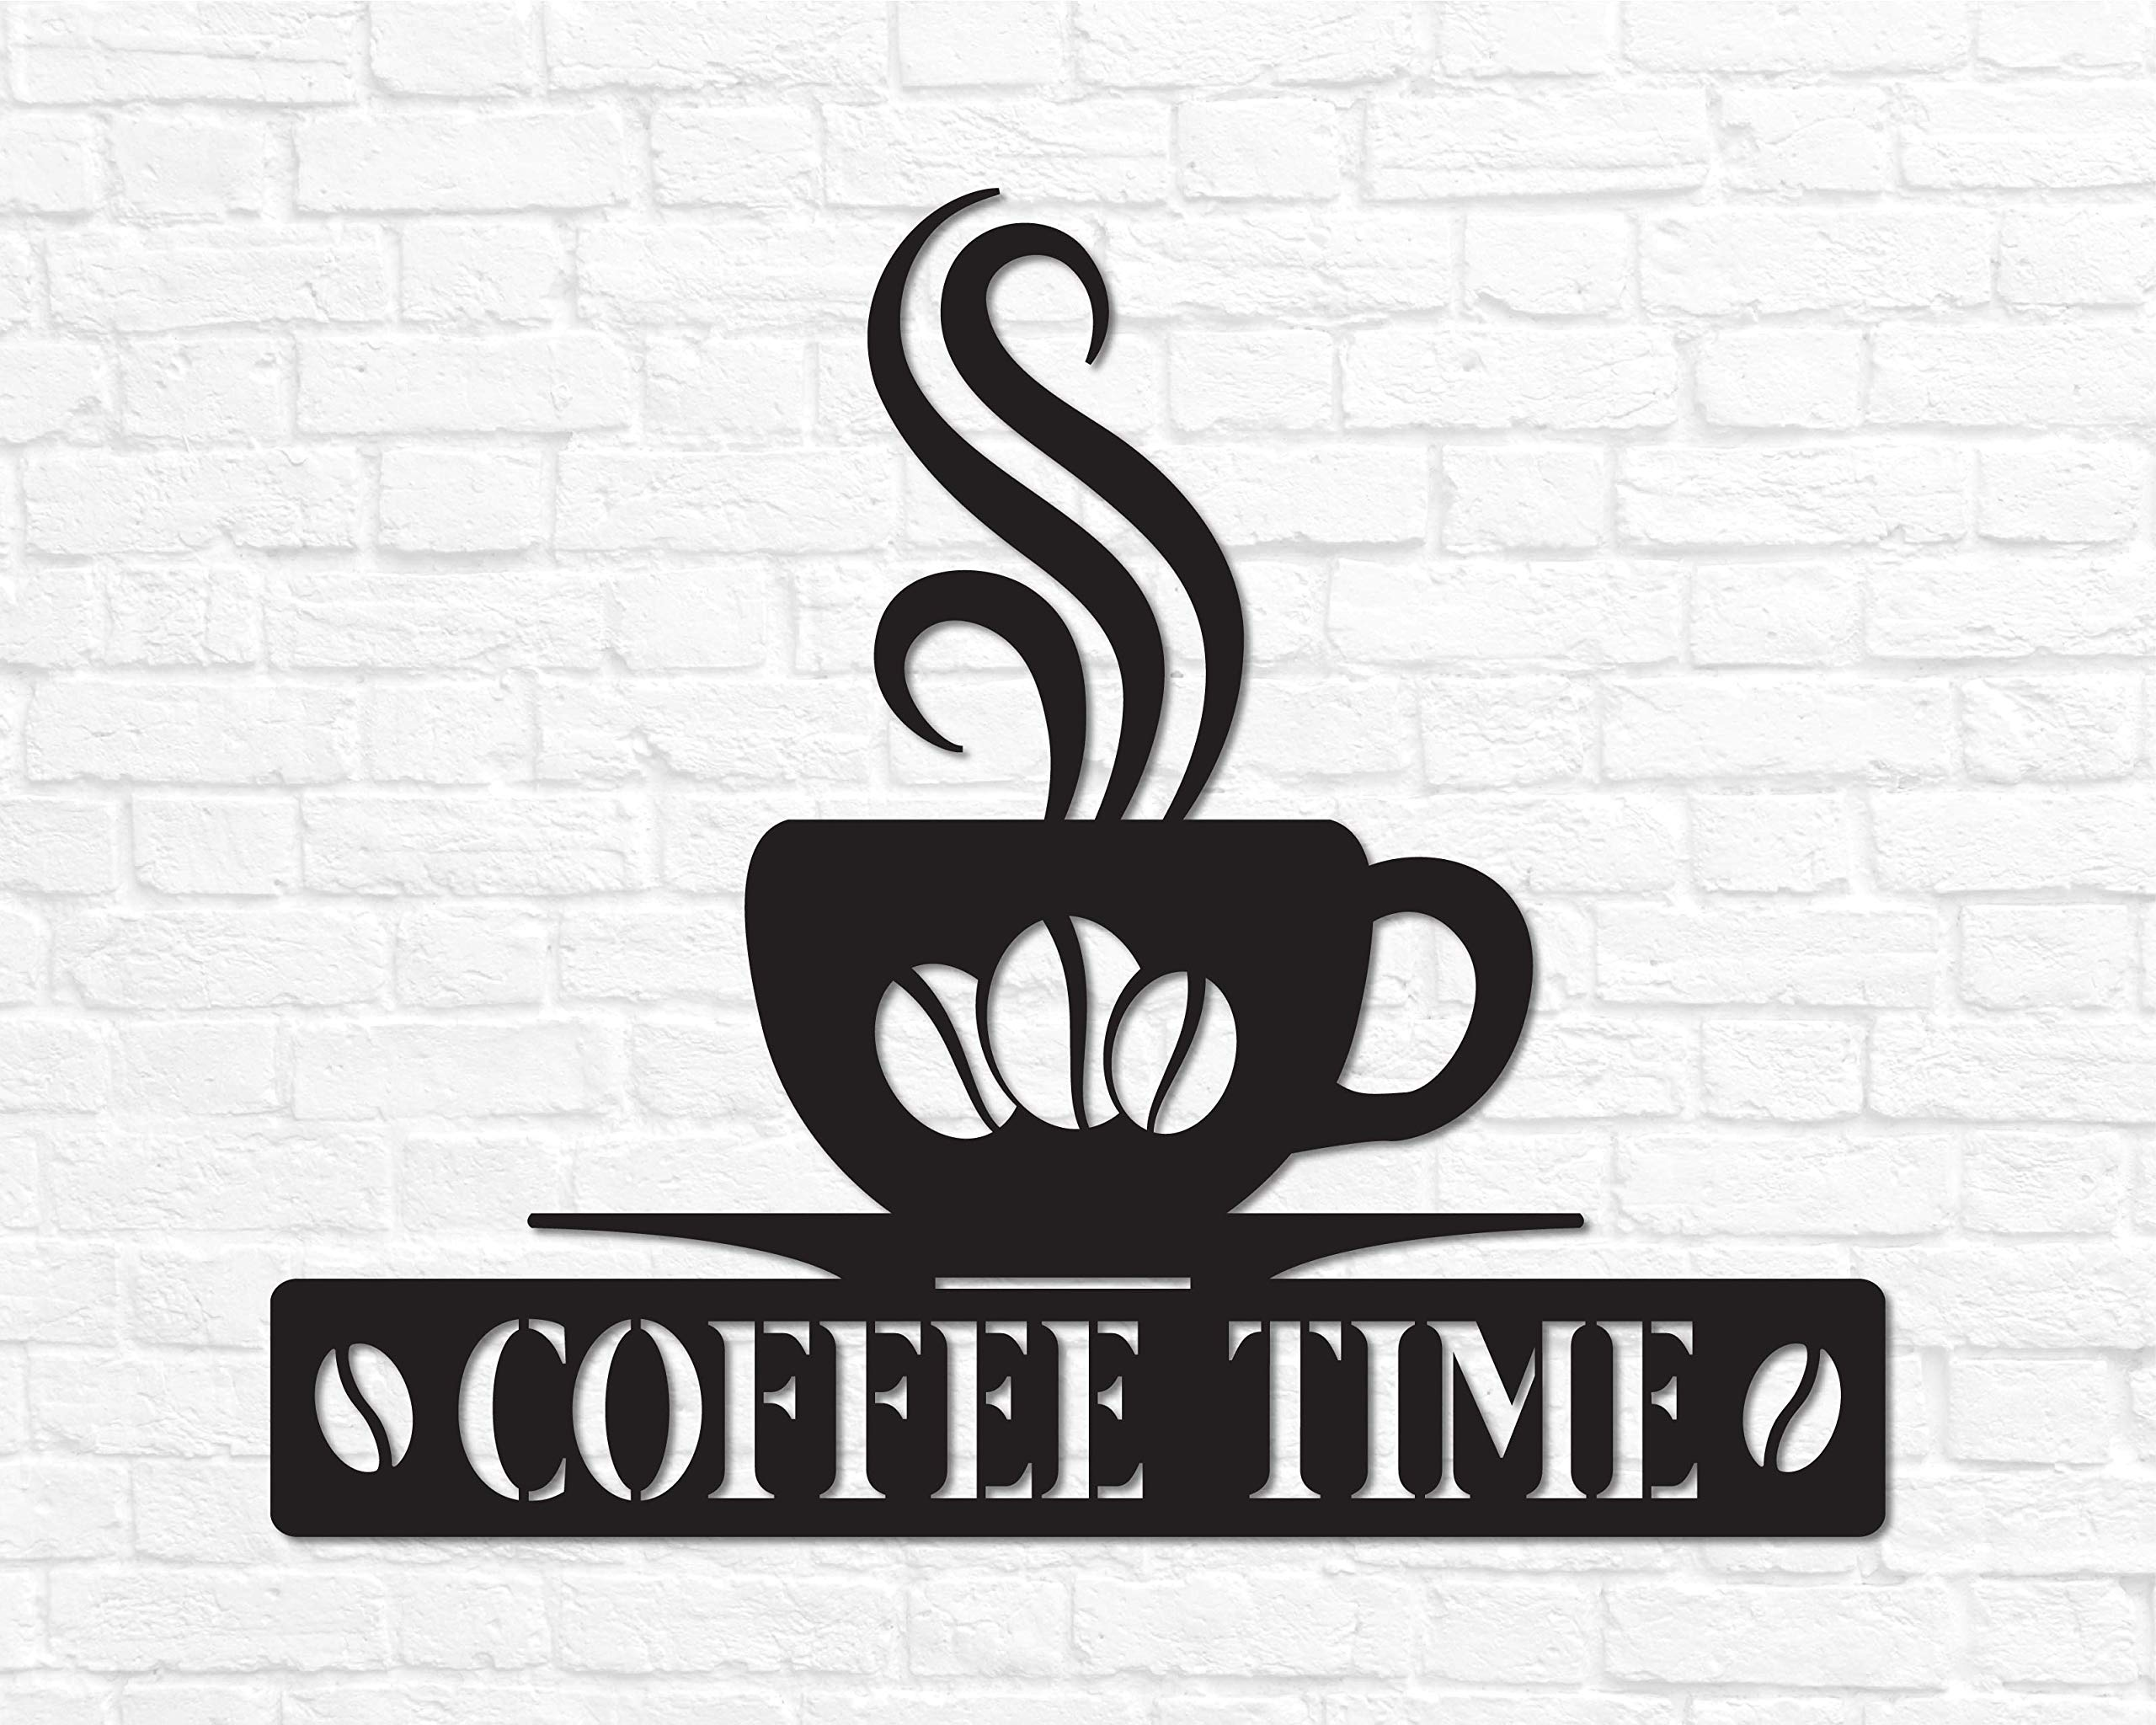 Coffee Sign Metal Coffee Sign For Kitchen Coffee Sign Decor Coffee Decor Kitchen Coffee Wall Art Steel Coffee Time Sign Kitchen Wall Decor Buy Online In Belize At Belize Desertcart Com Productid 180271044